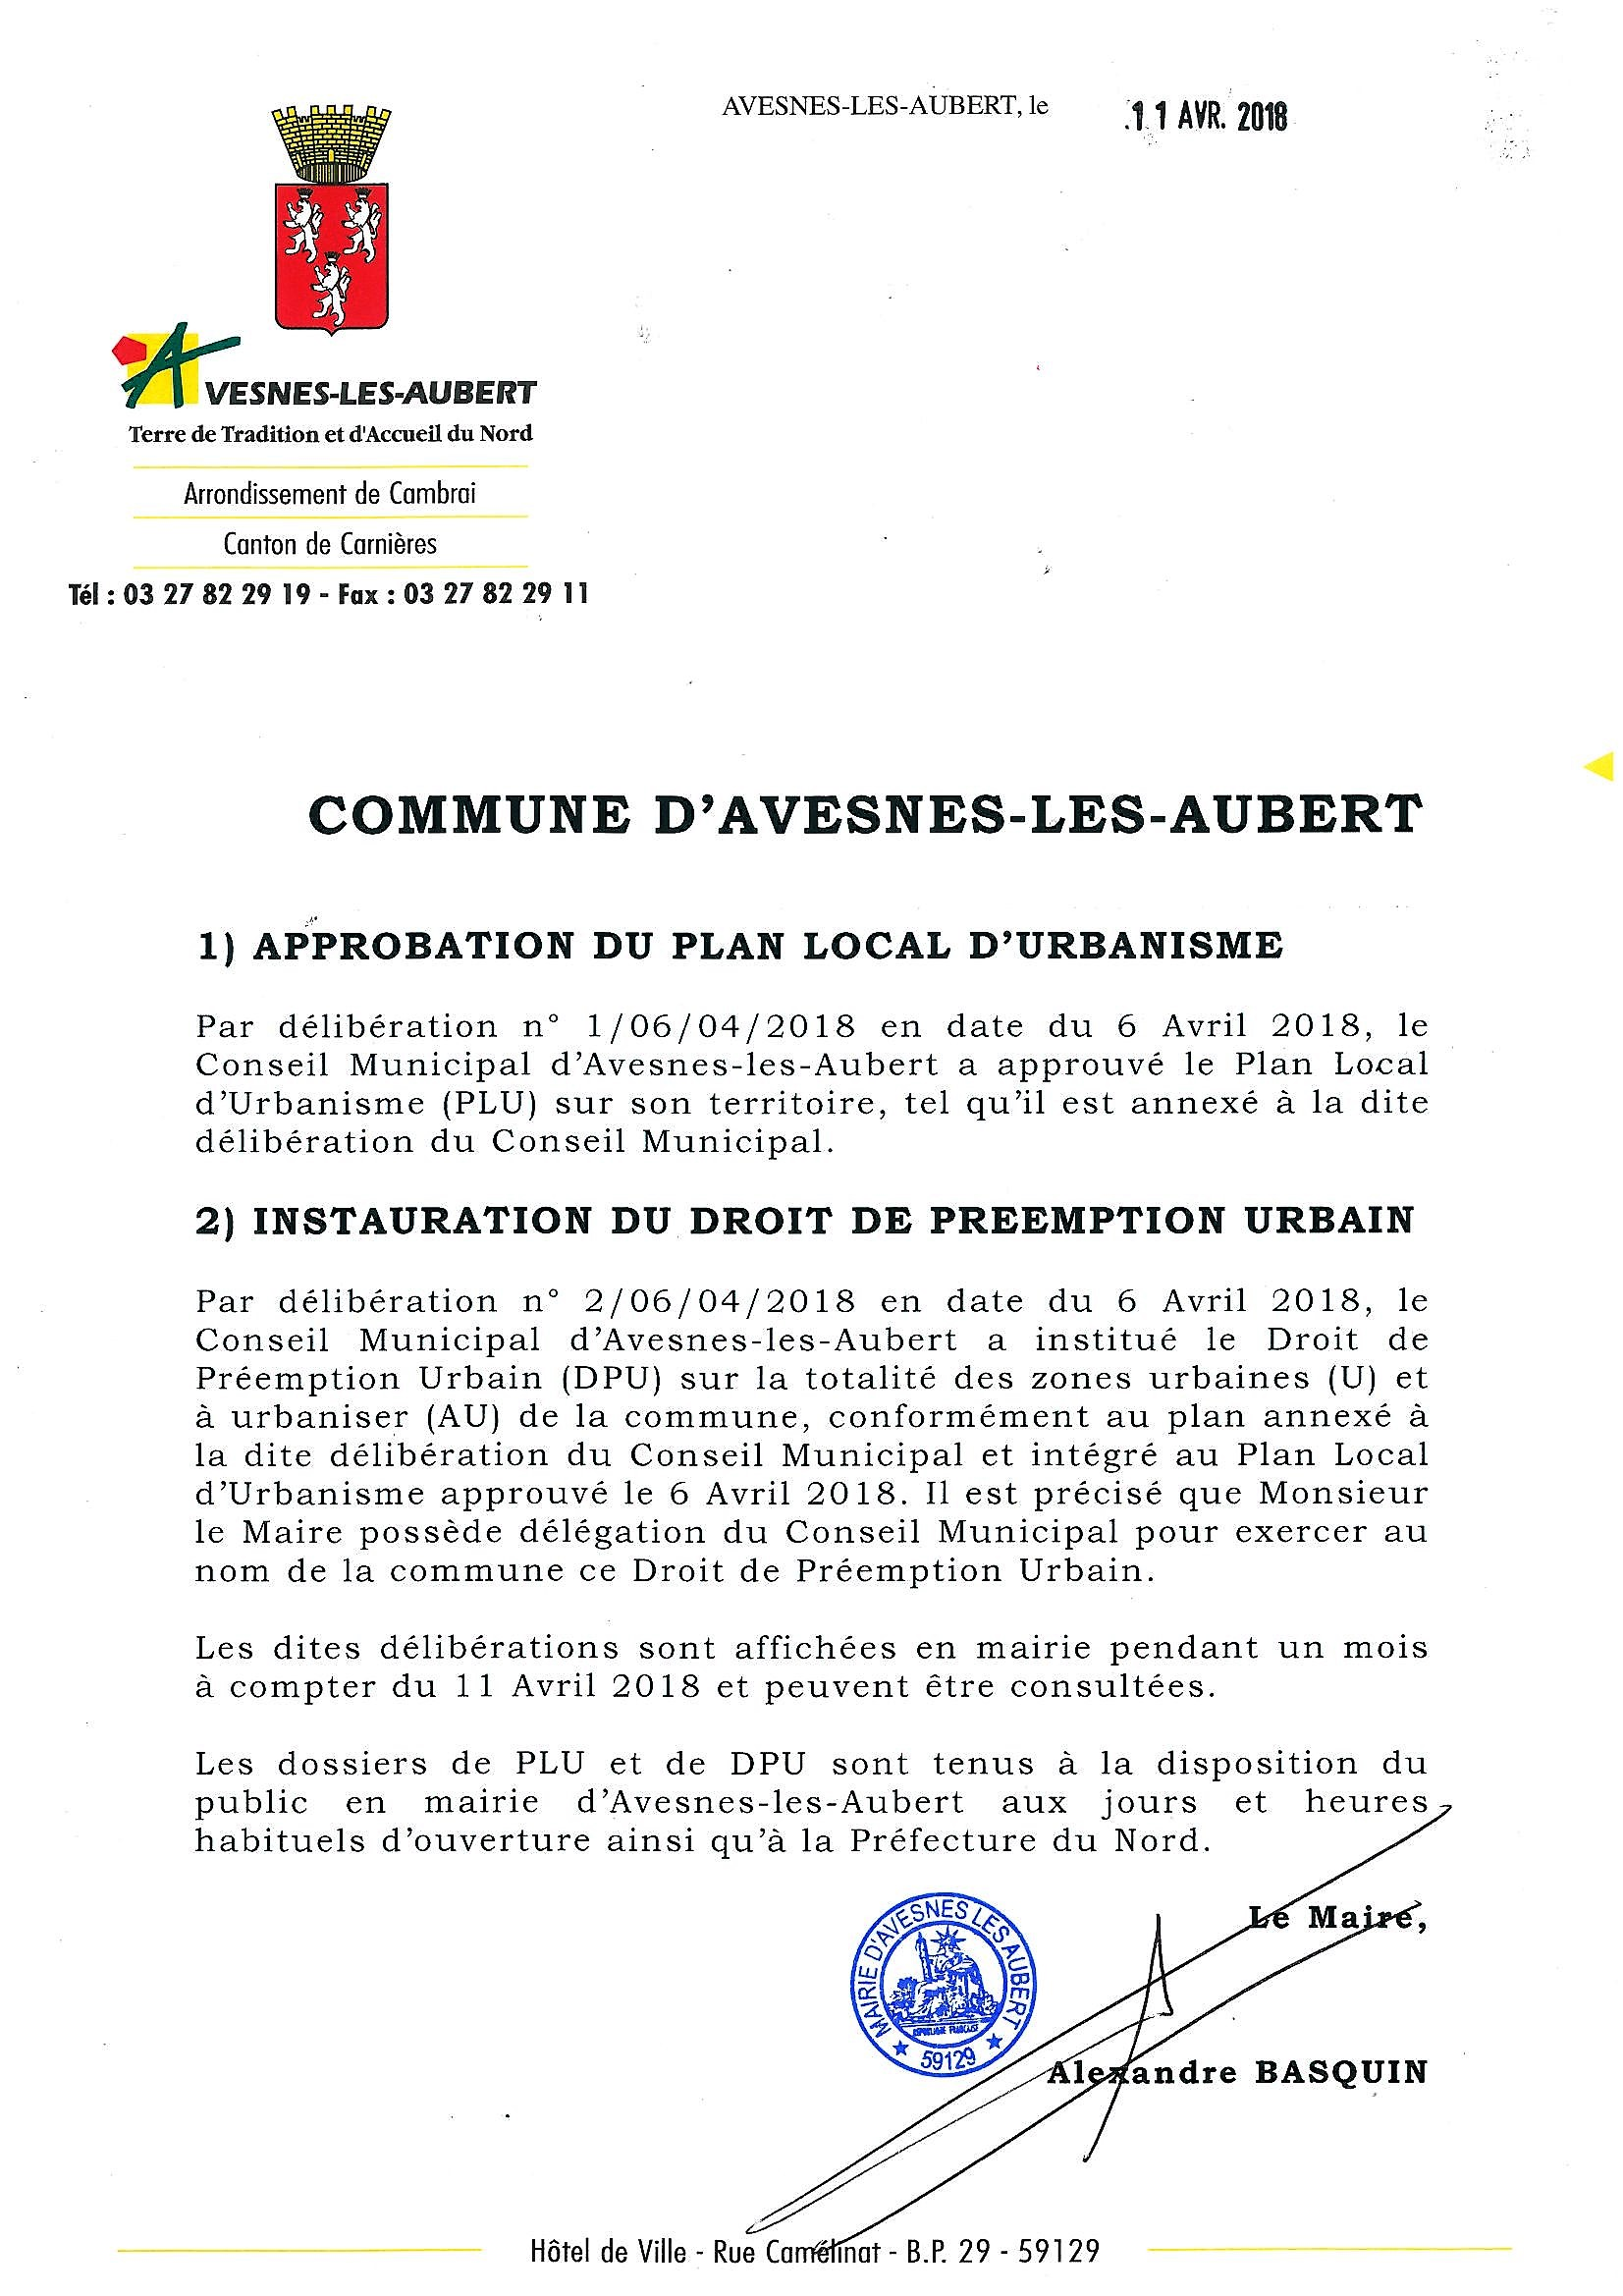 INSTAURATION DROIT DE PREEMPTION URBAIN VISEE